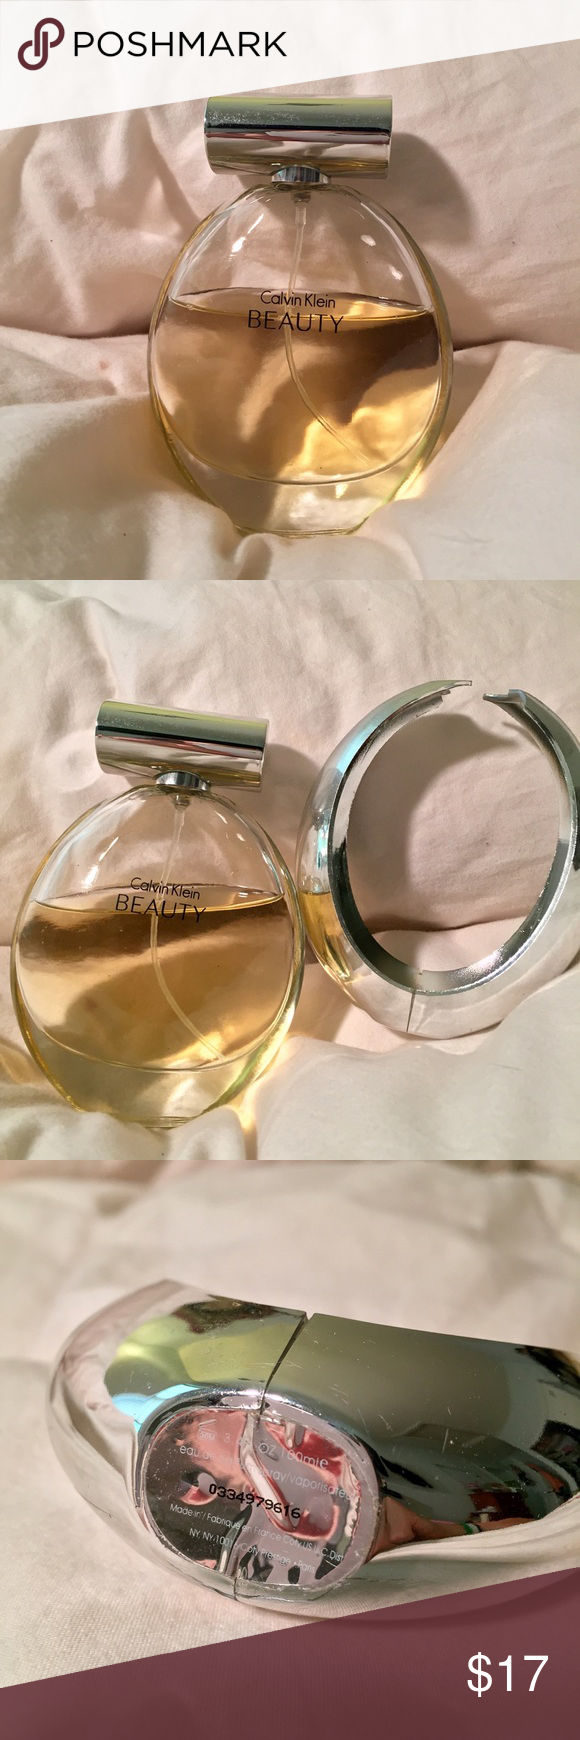 Calvin Klein Beauty EDP 100ml Eau de Parfum, 65% remaining. Plastic decoration/shell cracked and removed, bottle and contents undamaged. Calvin Klein Accessories